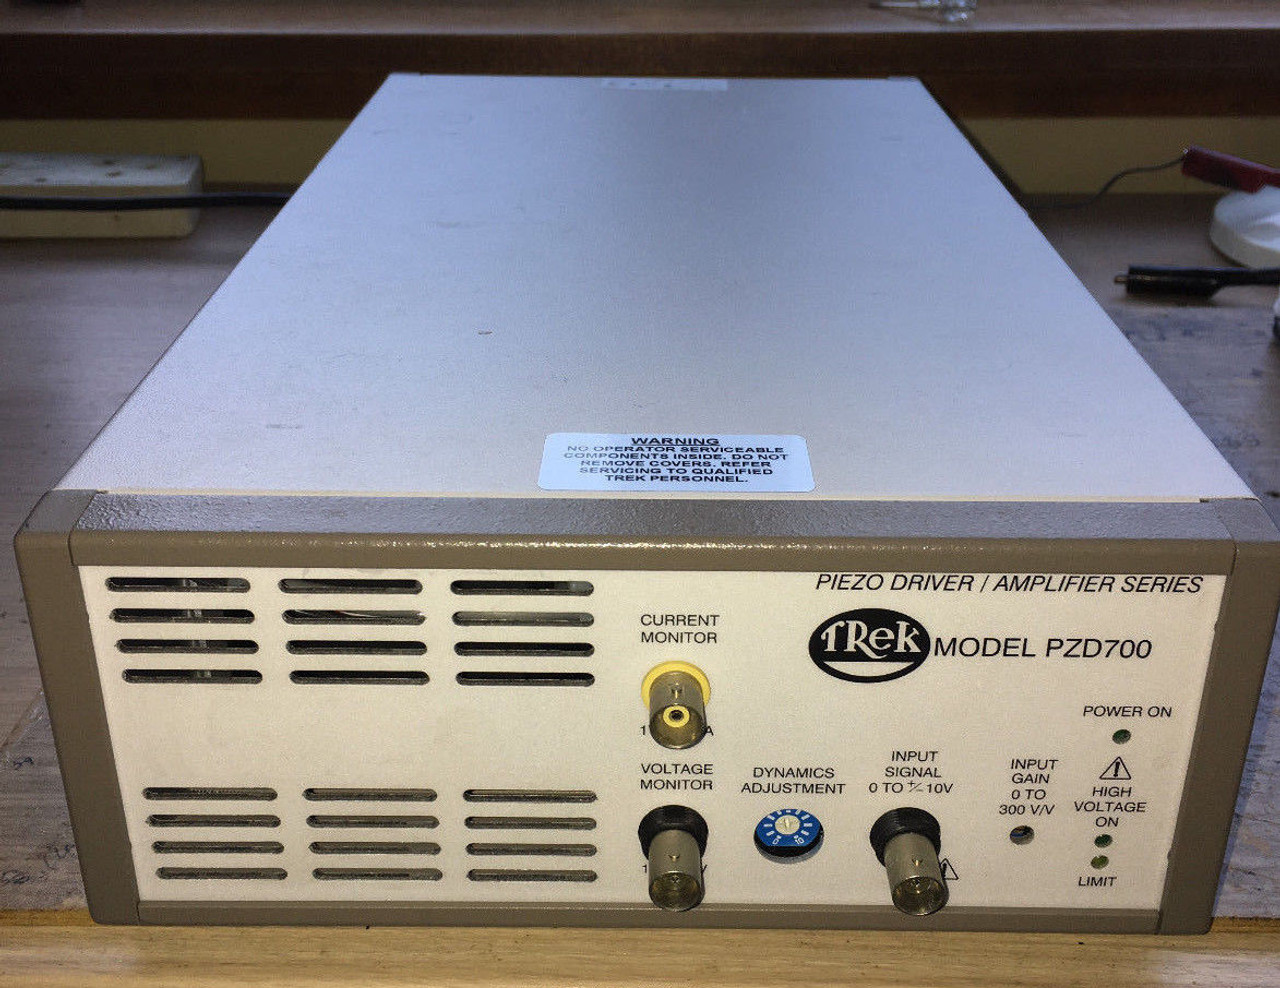 Trek PZD700 High Voltage Amplifier and Piezo Driver, +/-700V, 100 mA, Refurbished, with cables and warranty